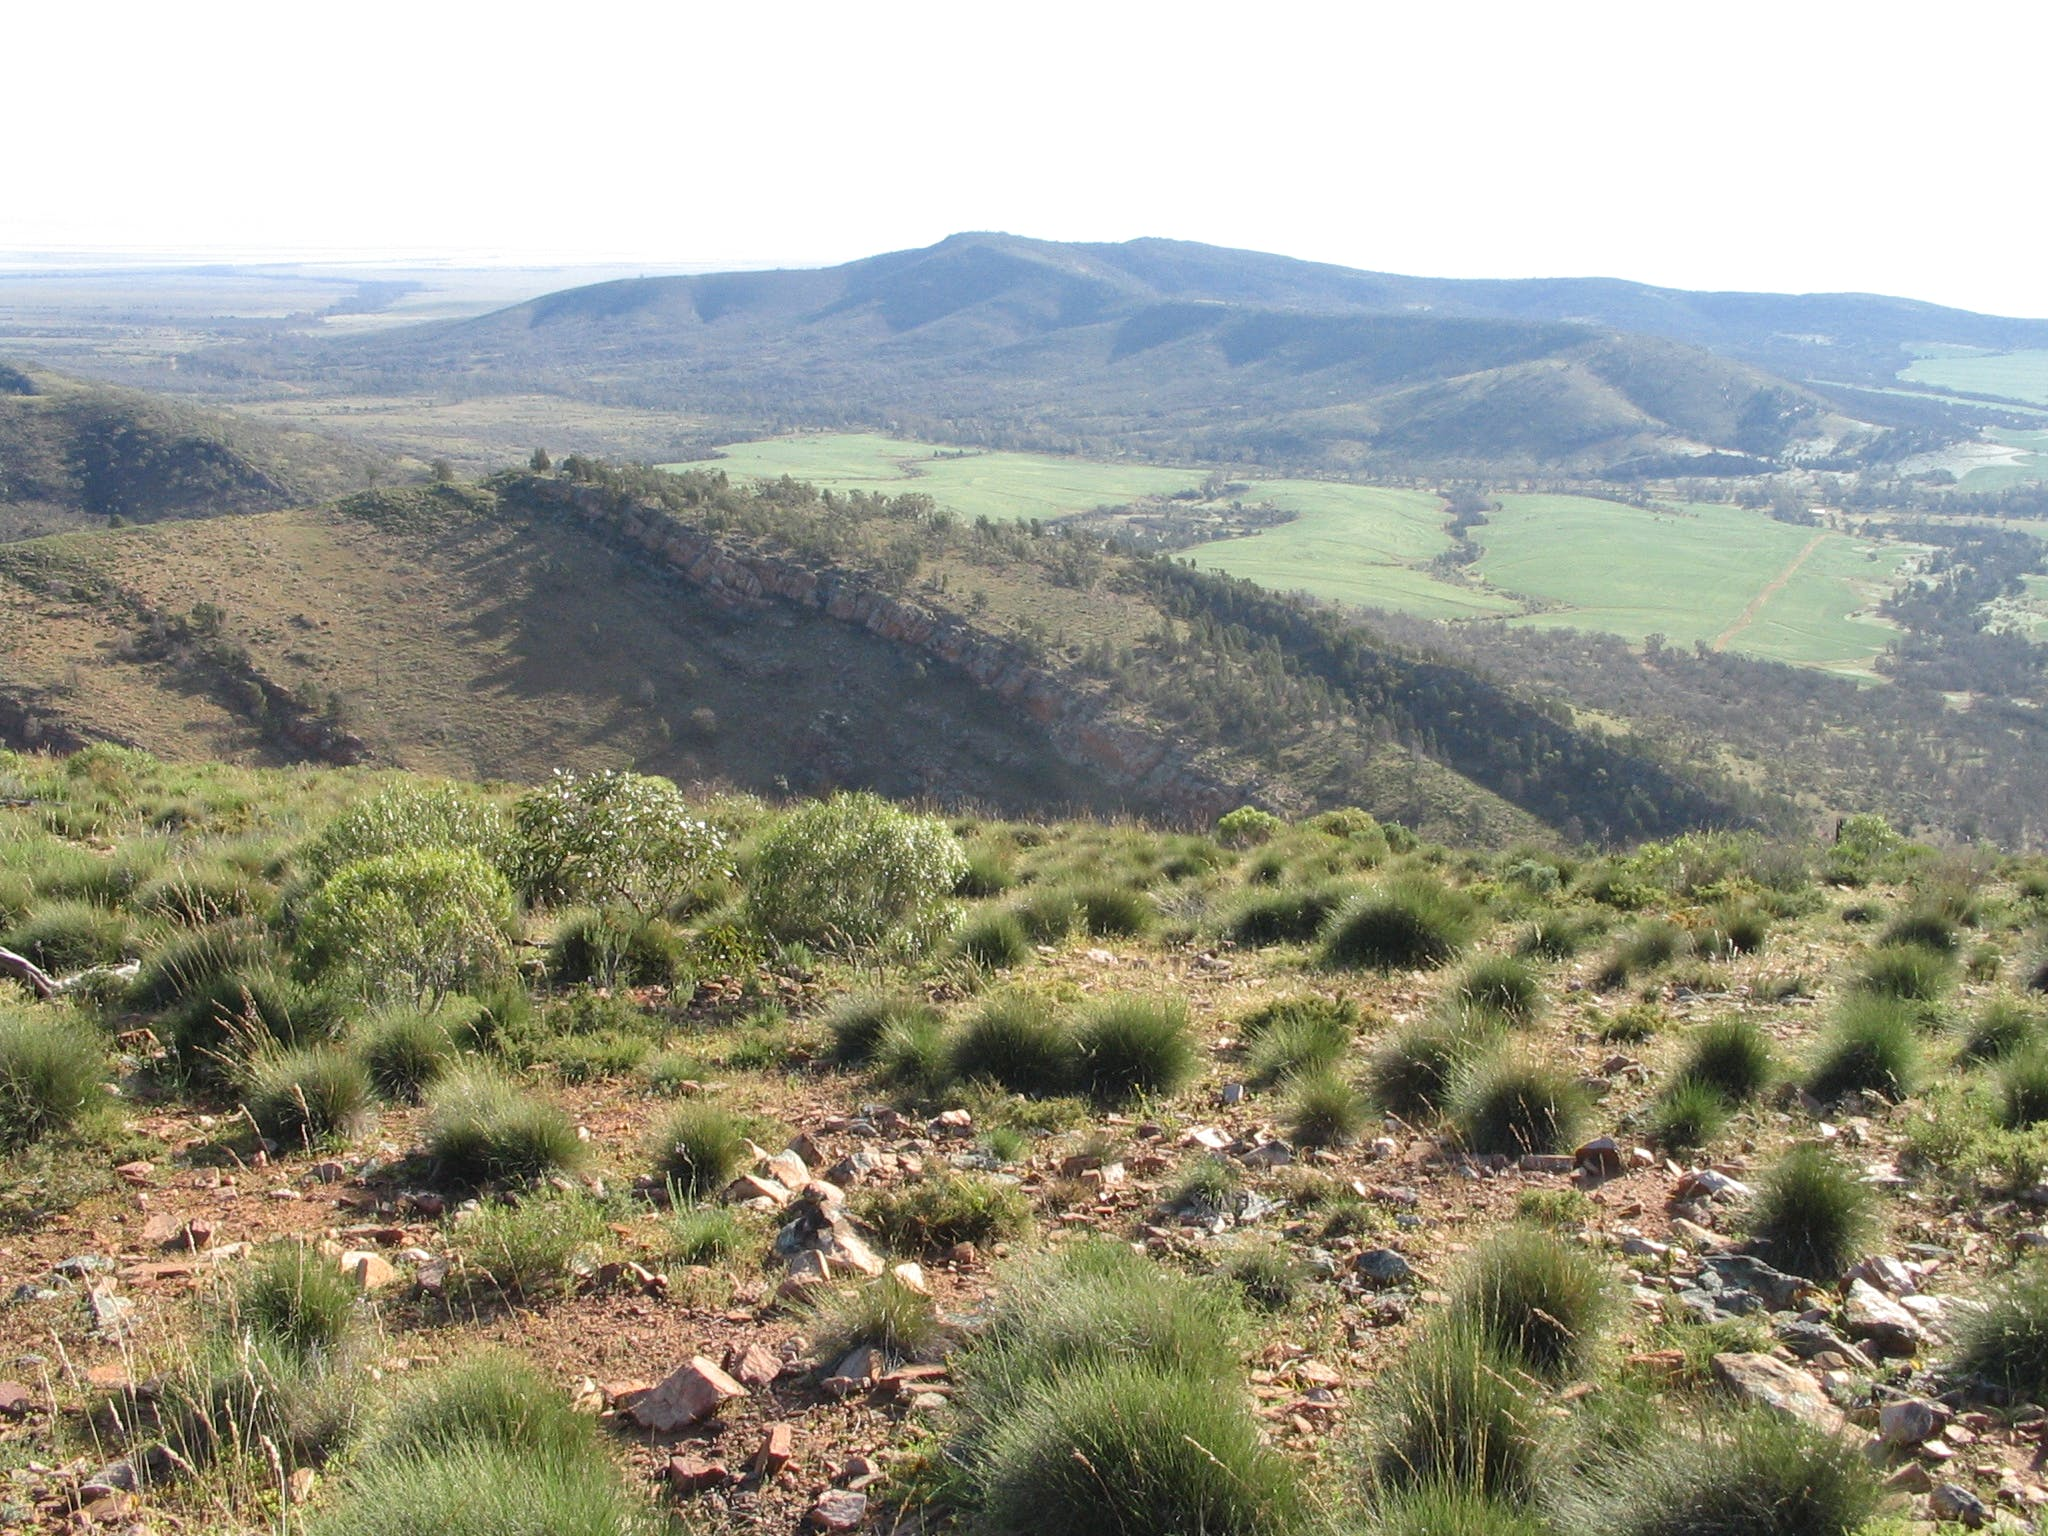 Horseshoe Rim 4WD Adventure Track - Find Attractions